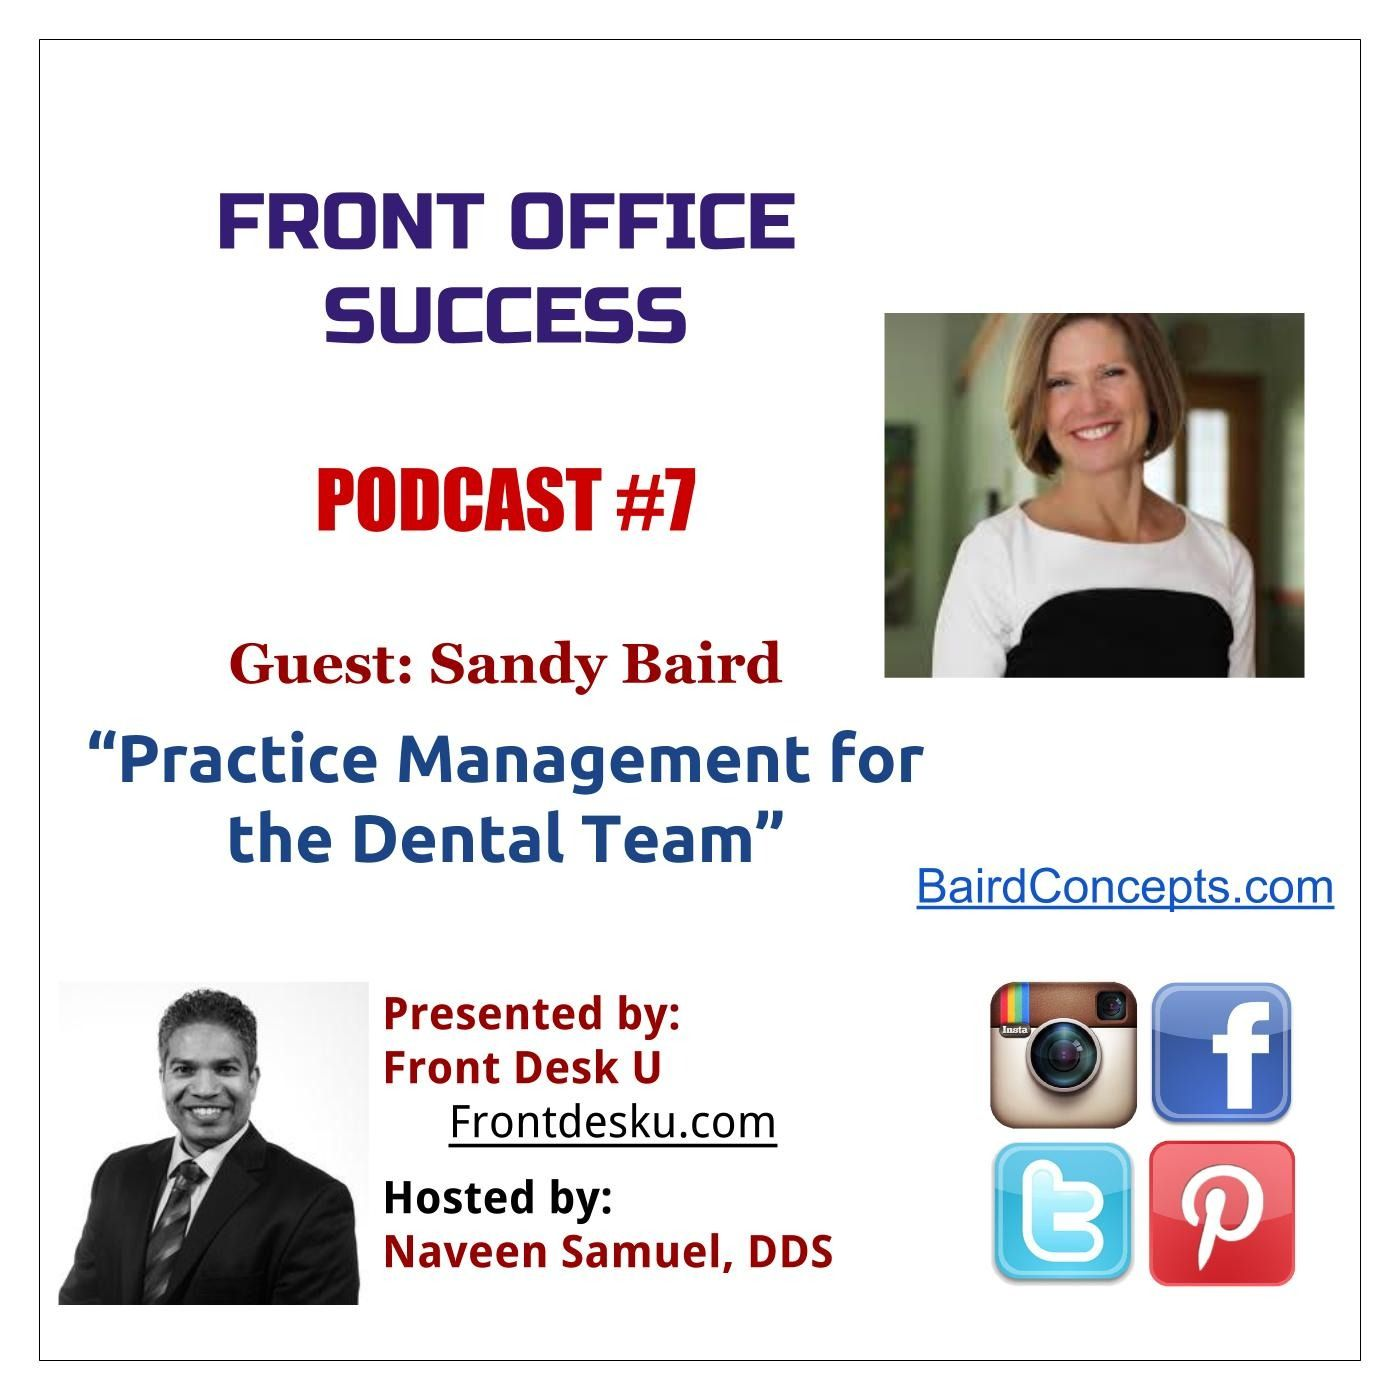 Front Office Success - Podcast #7 - Sandy Baird